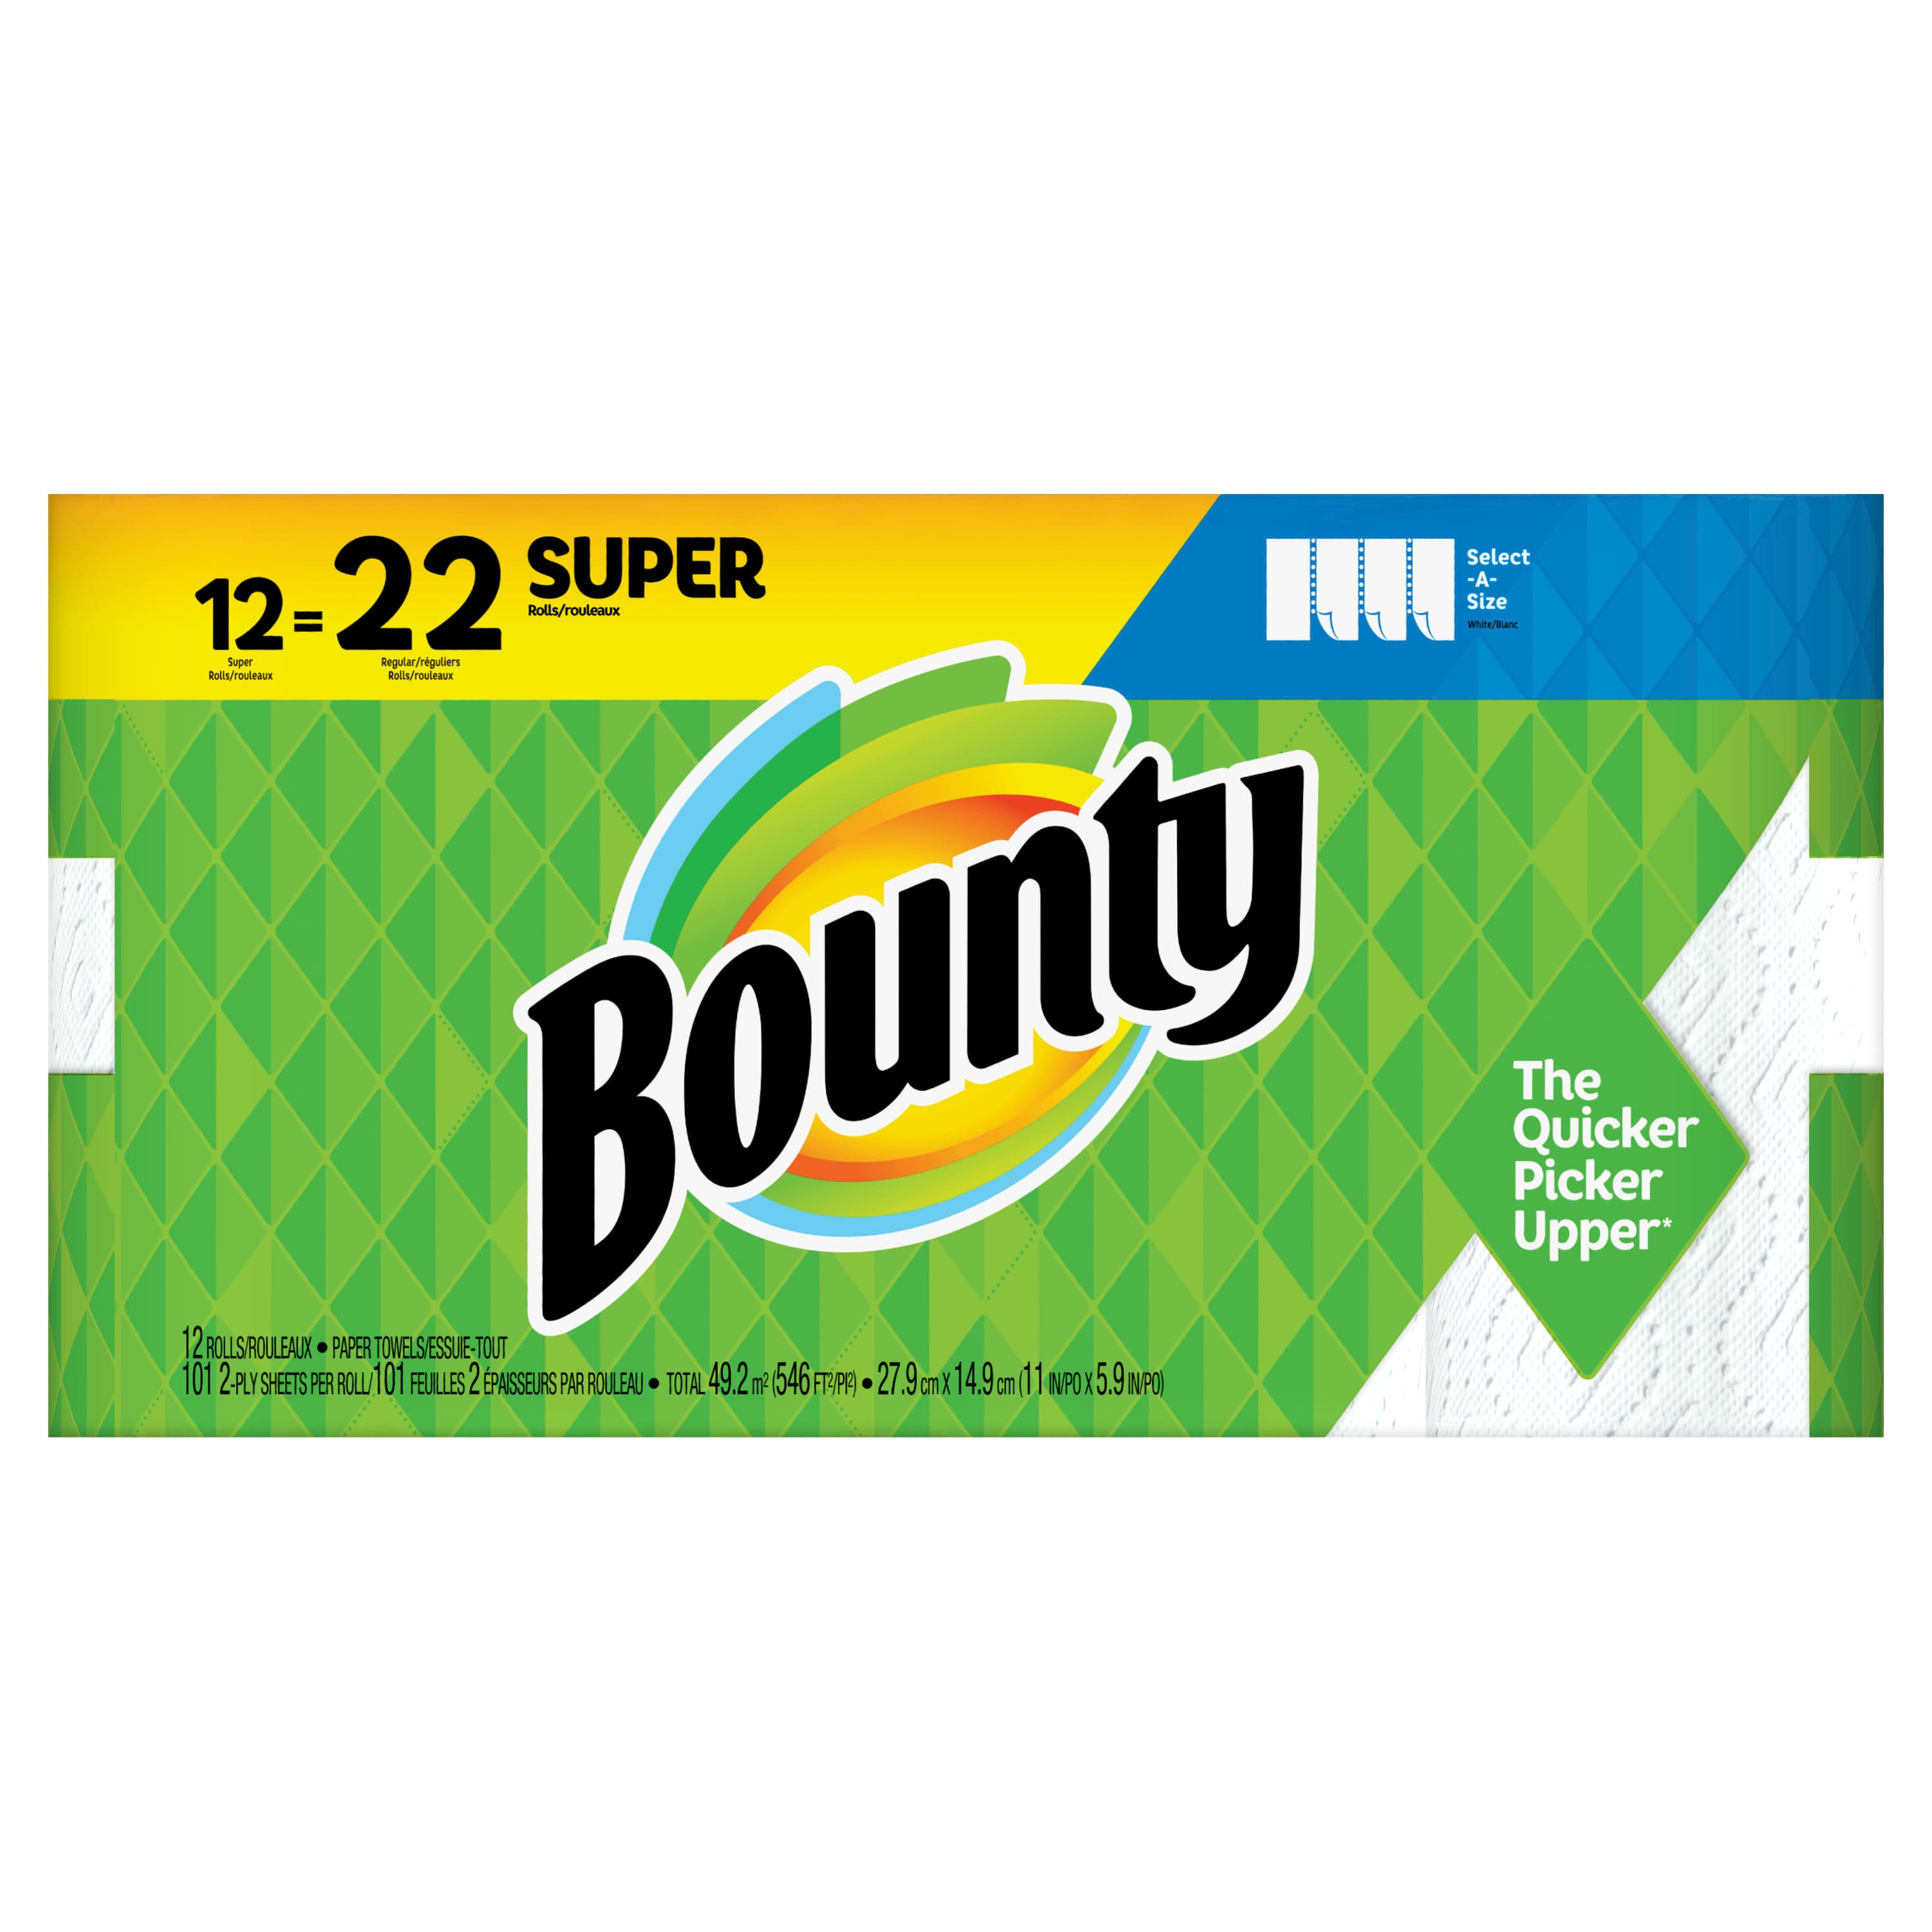 Bounty Select-A-Size Paper Towels, White, 12 Super Rolls = 22 Regular Rolls $18.34